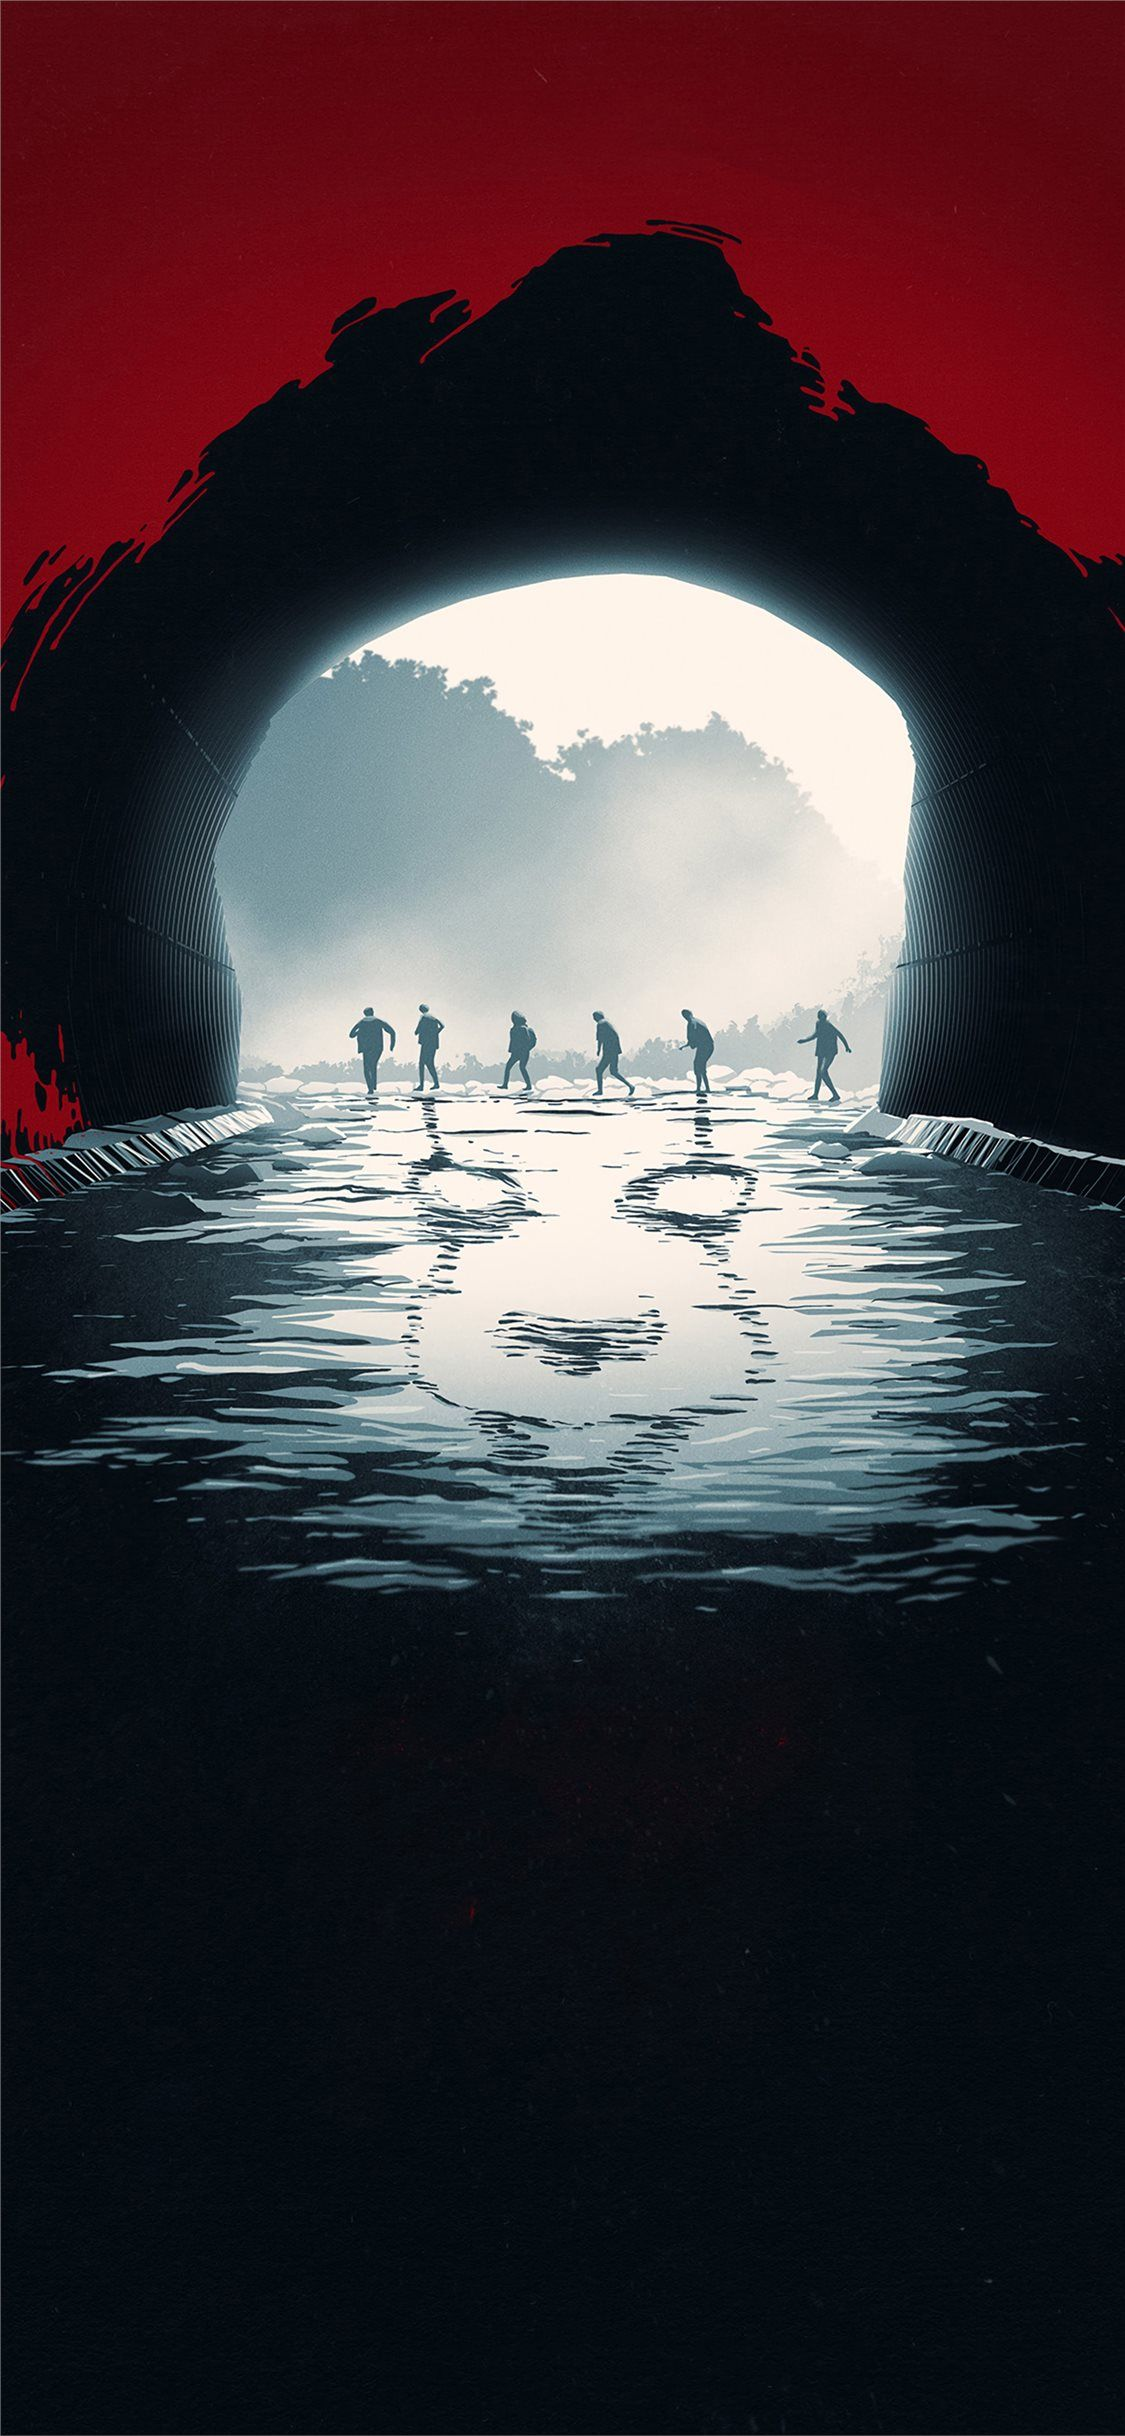 It Chapter Two 2019 Poster Wallpaper Scary Wallpaper Live Wallpaper Iphone Movie Wallpapers